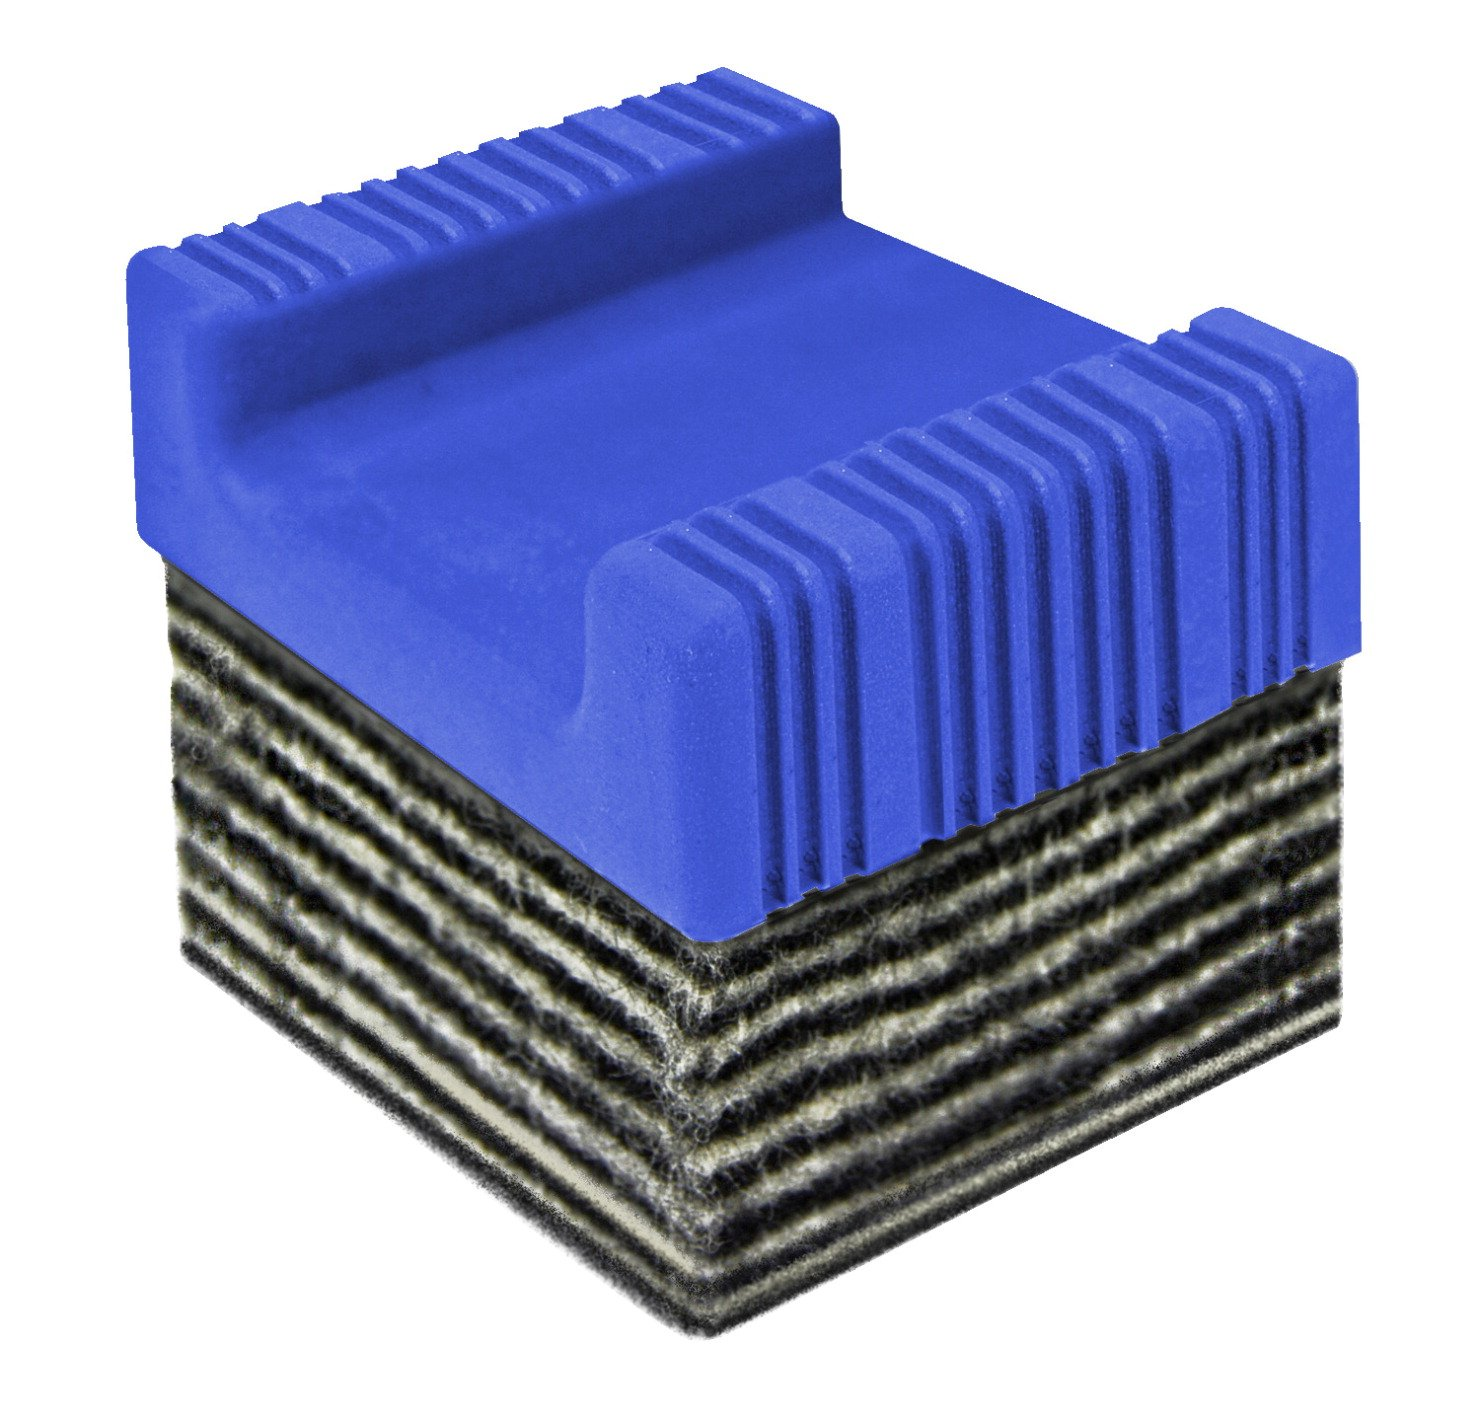 The Classics 15 Layer Dry Erase Whiteboard Eraser, 2 x 2 inches, Black/Blue